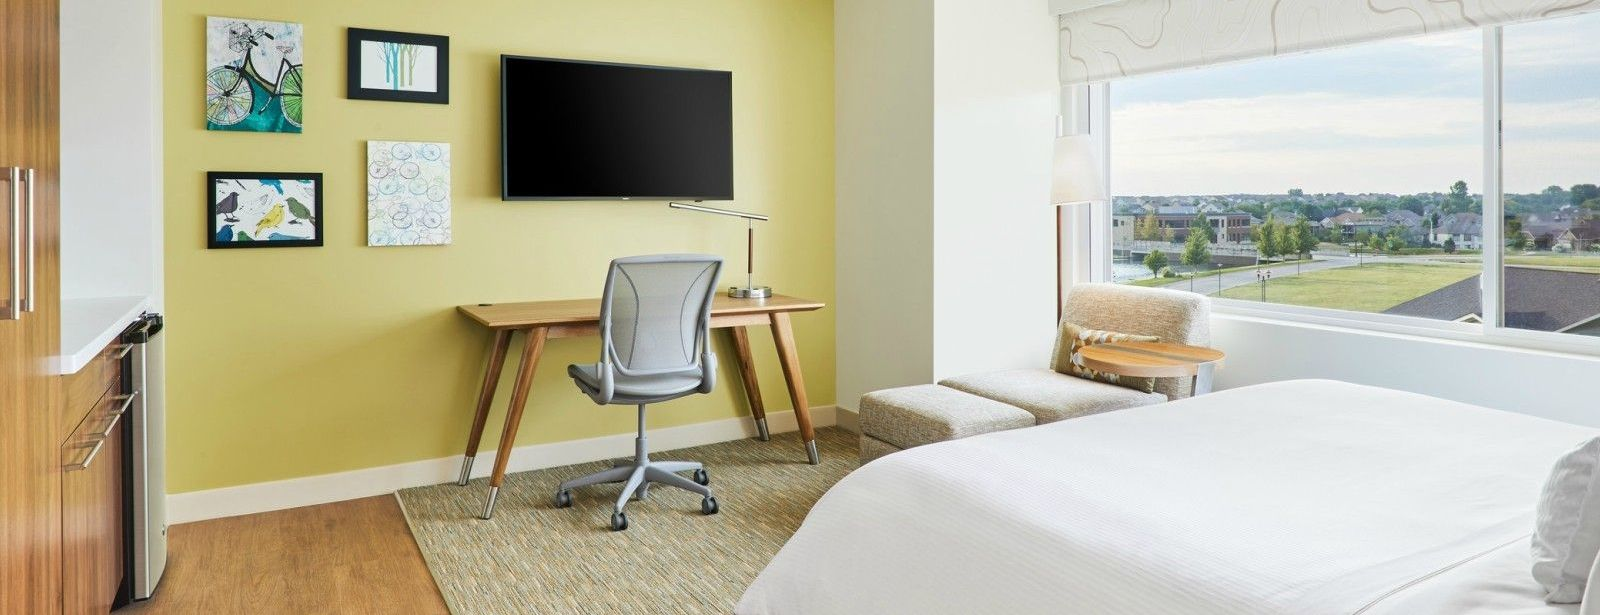 Des Moines Accommodations - Accessible King Room